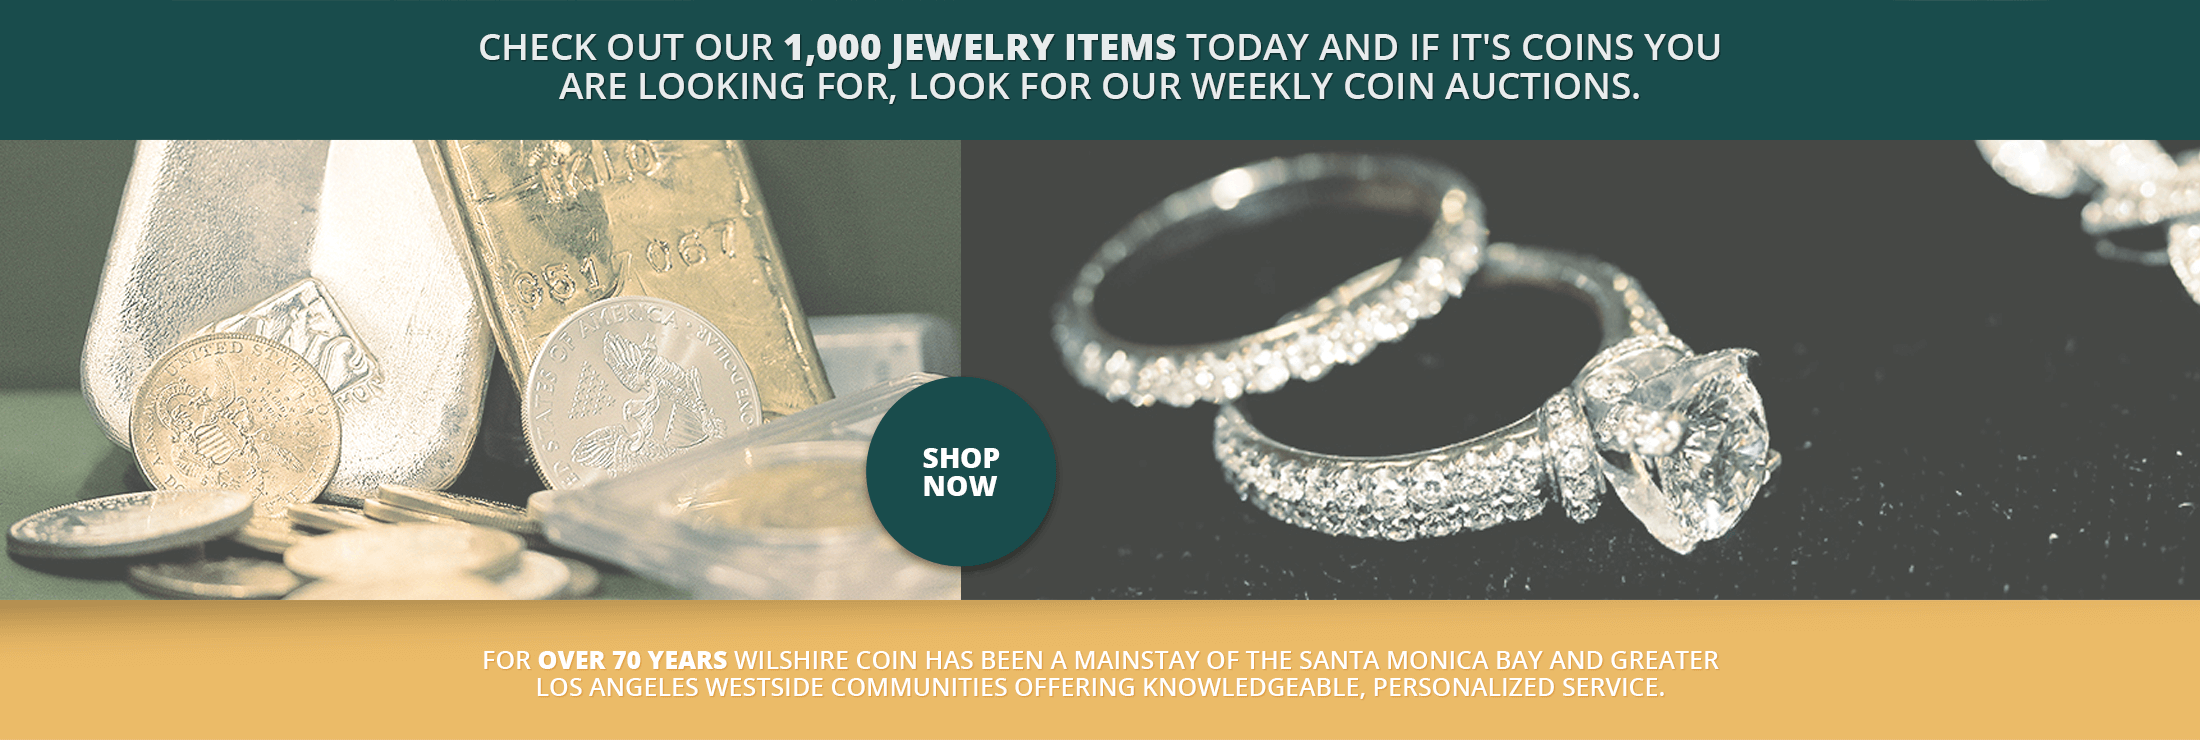 Check out our 1,000 jewelry items today and if it's coins you are looking for, look for our weekly coin auctions. - For over 70 years Wilshire Coin has been a mainstay of the Santa Monica Bay and greater Los Angeles Westside communities offering knowledgeable, personalized service.